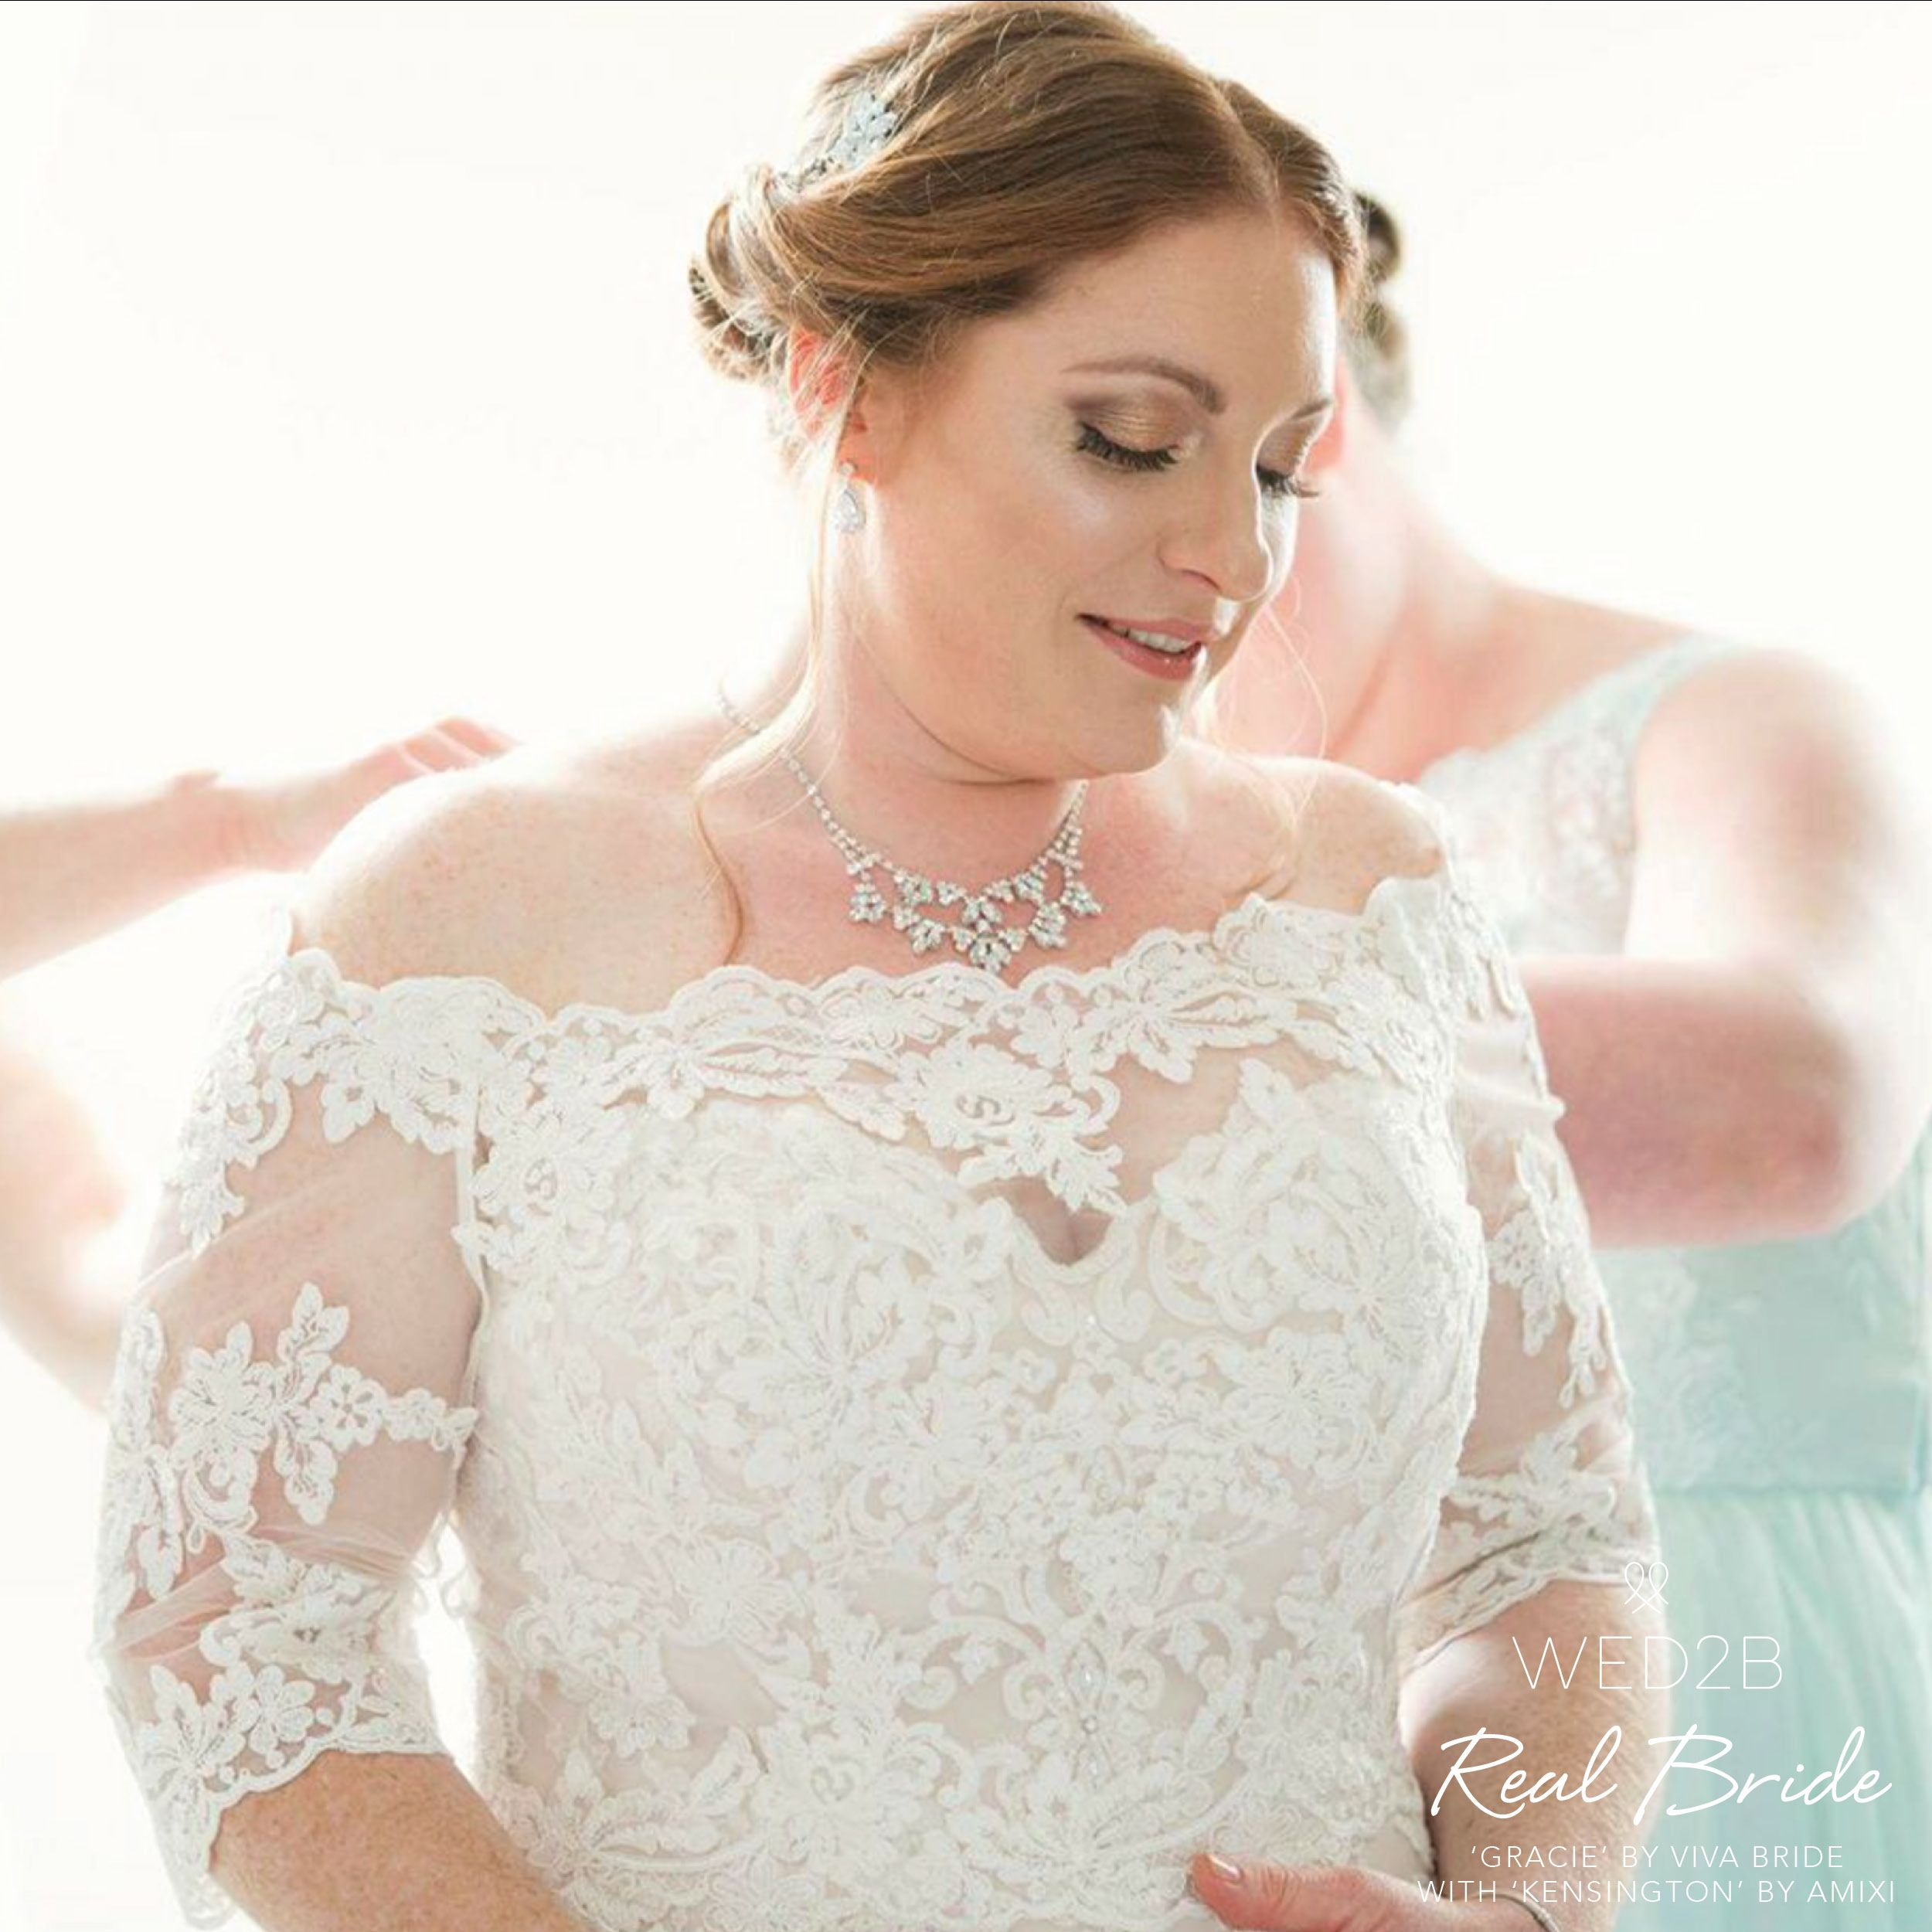 Real Brides Wed2b: Stunning Real Bride Laura Looks Amazing In 'Gracie' By